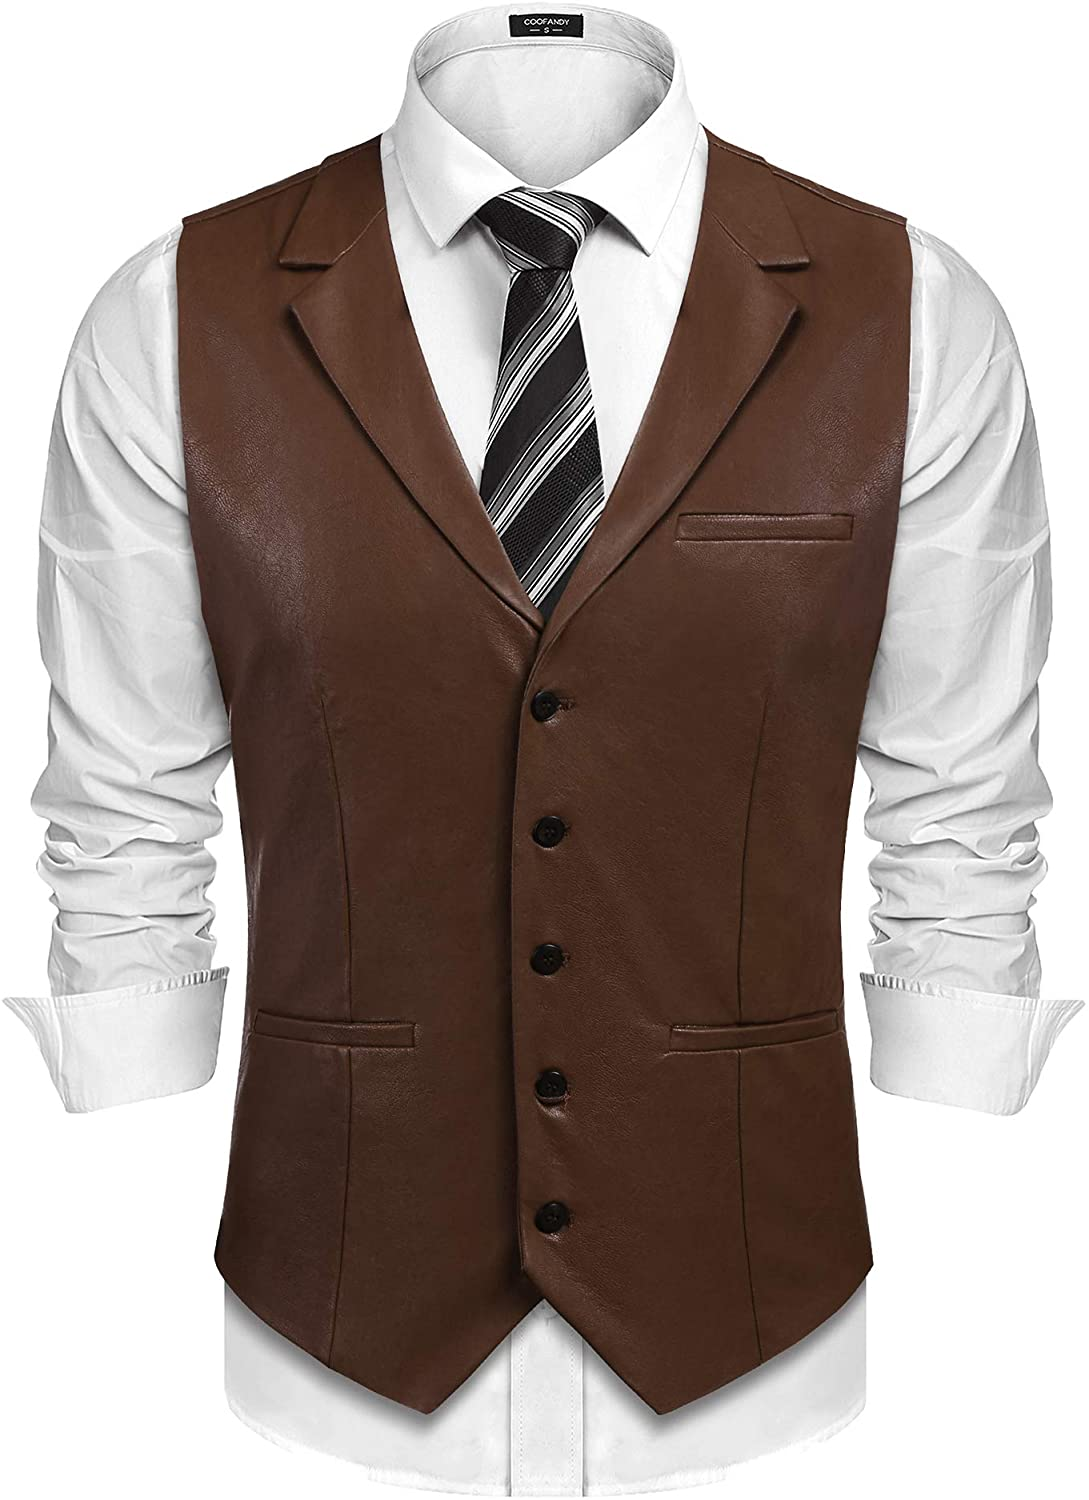 COOFANDY Mens Leather Vest Casual Western Vest Jacket Lightweight V-Neck Suit Vest Waistcoat